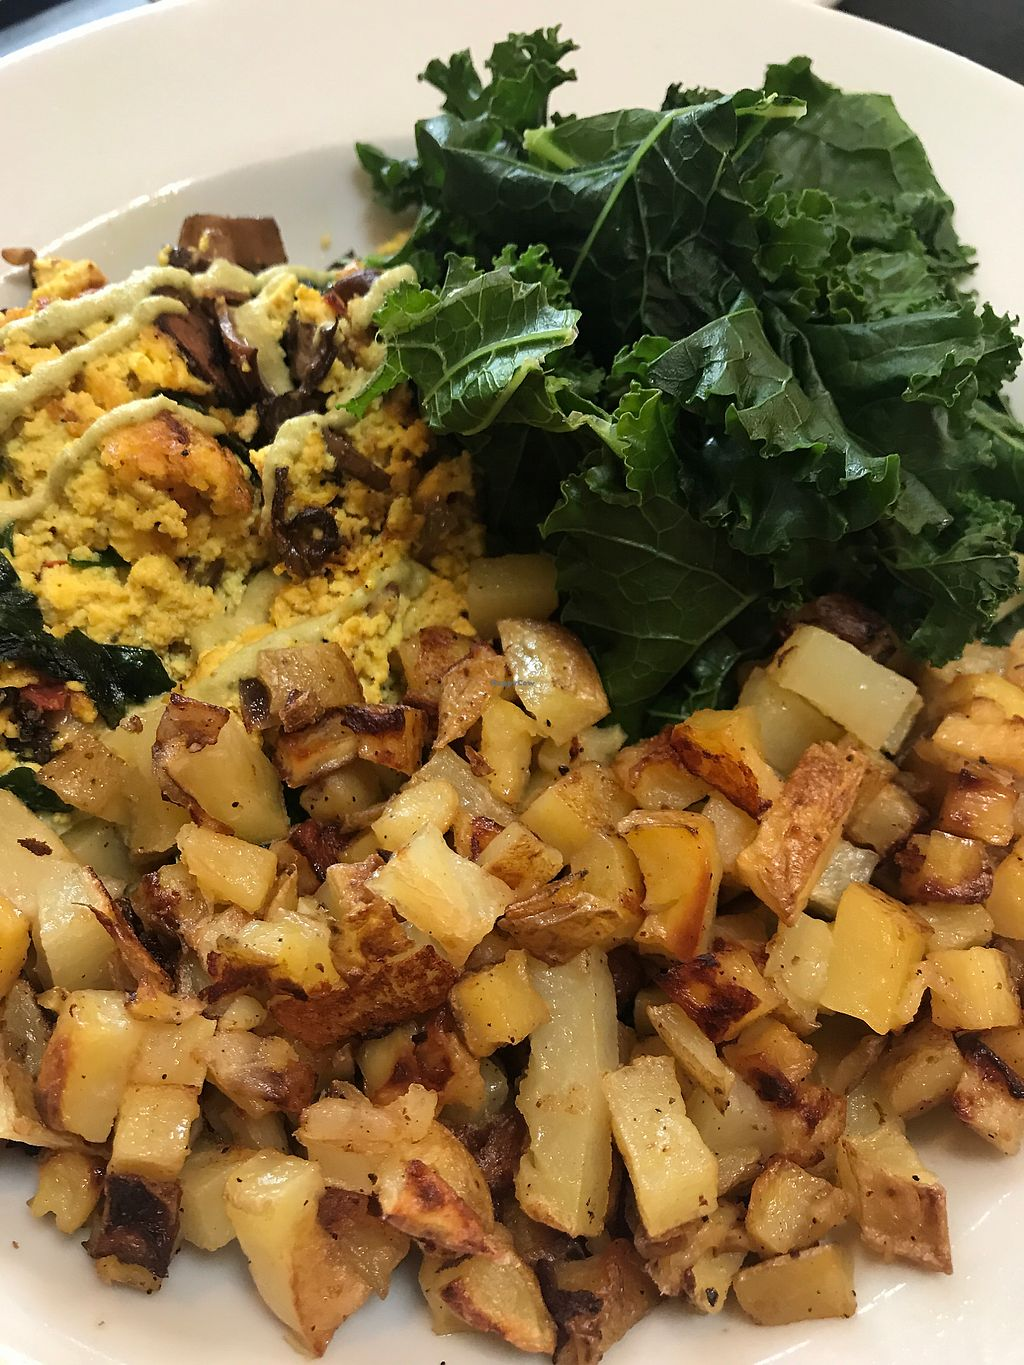 """Photo of Blossoming Lotus  by <a href=""""/members/profile/RobineBots"""">RobineBots</a> <br/>Vegan tofu scramble and delicious potatoes! <br/> March 25, 2018  - <a href='/contact/abuse/image/18709/375965'>Report</a>"""